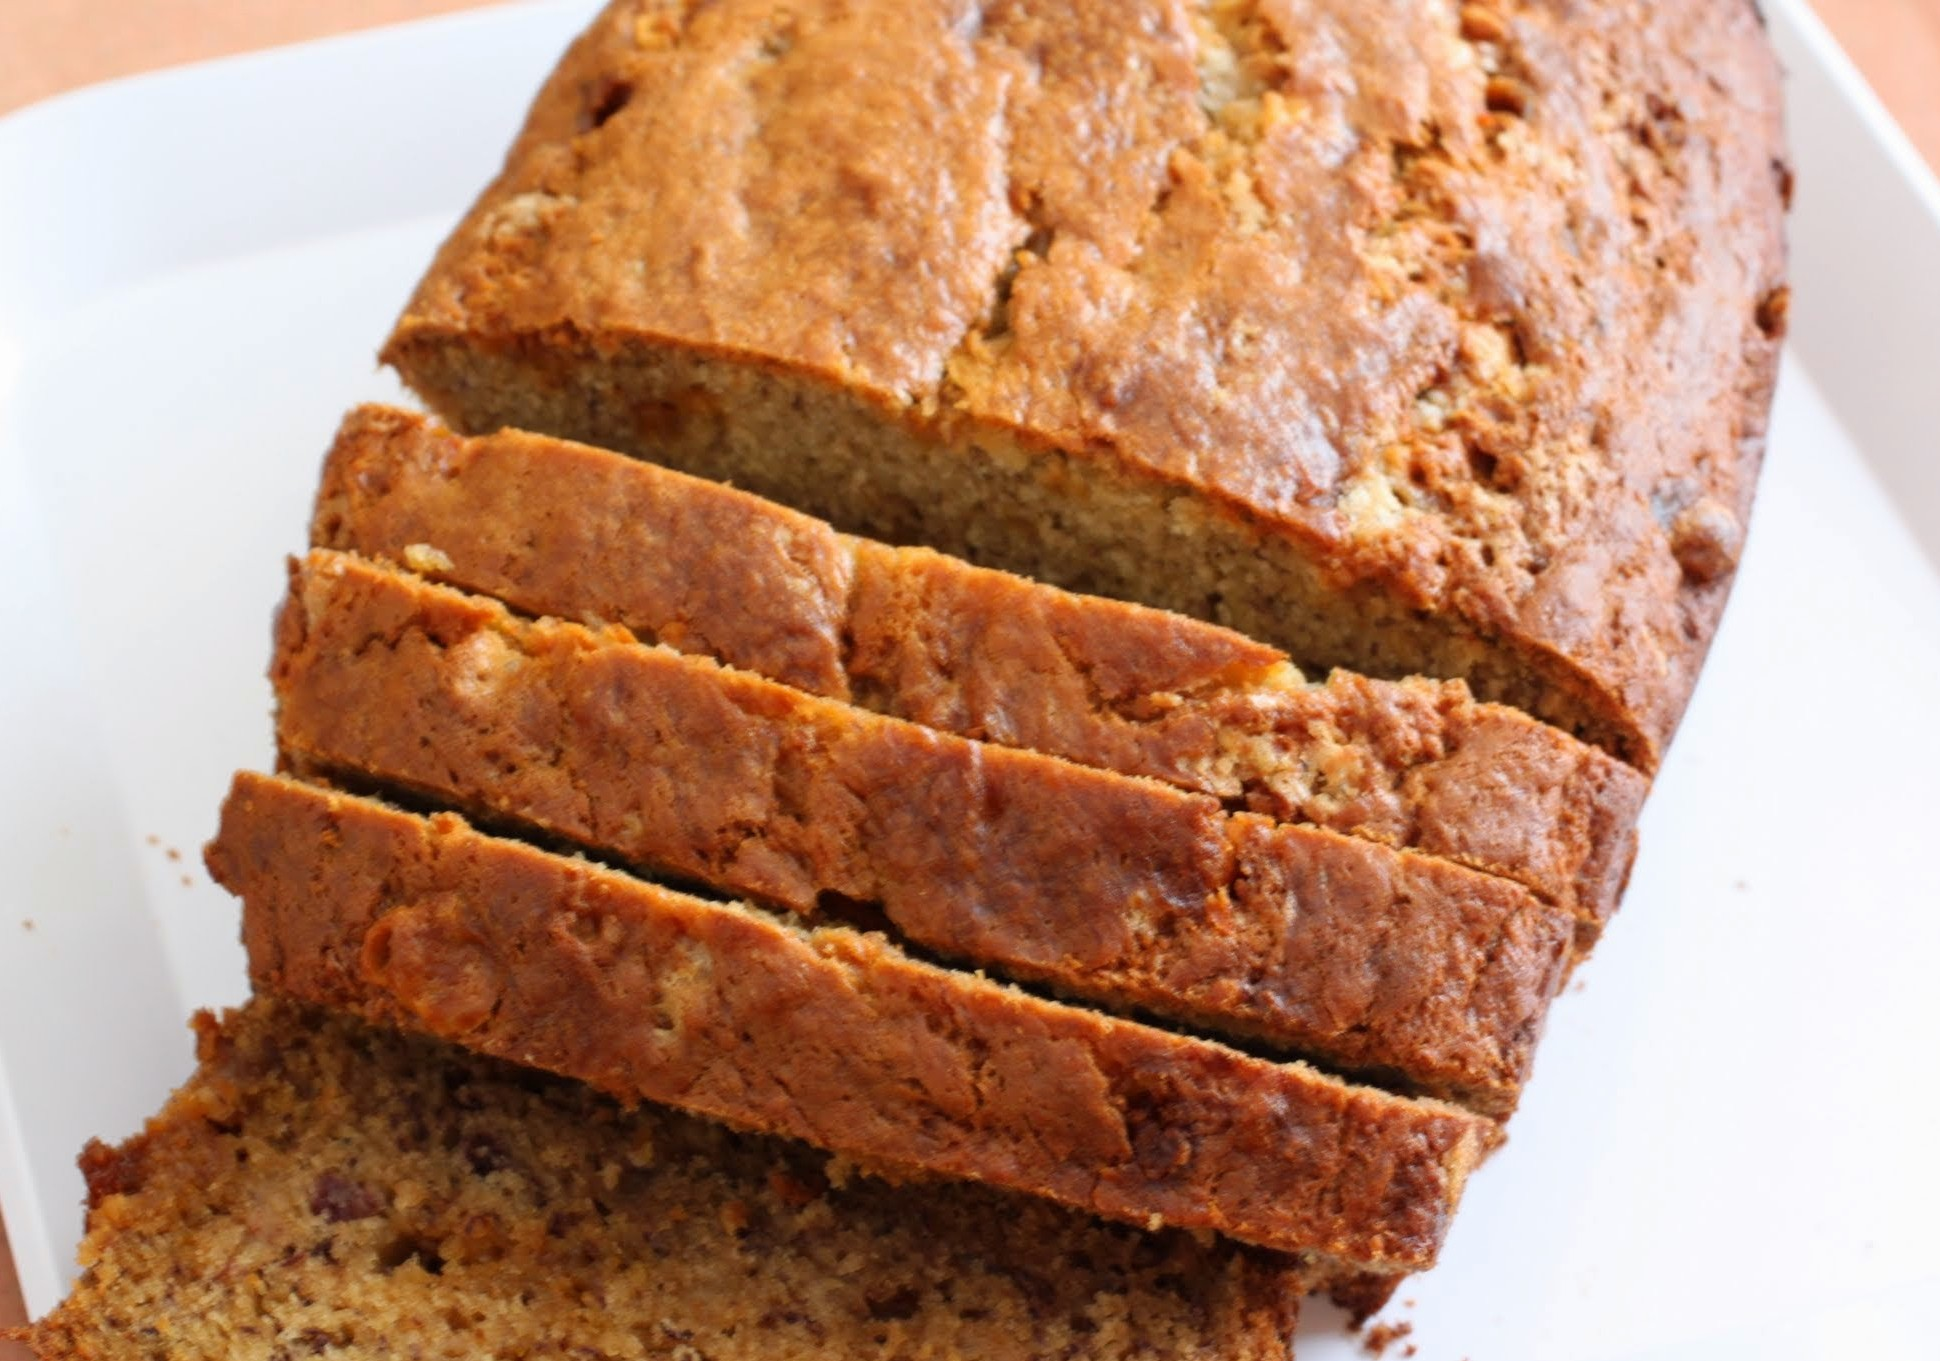 White Chocoolate Butterscotch Banana Bread